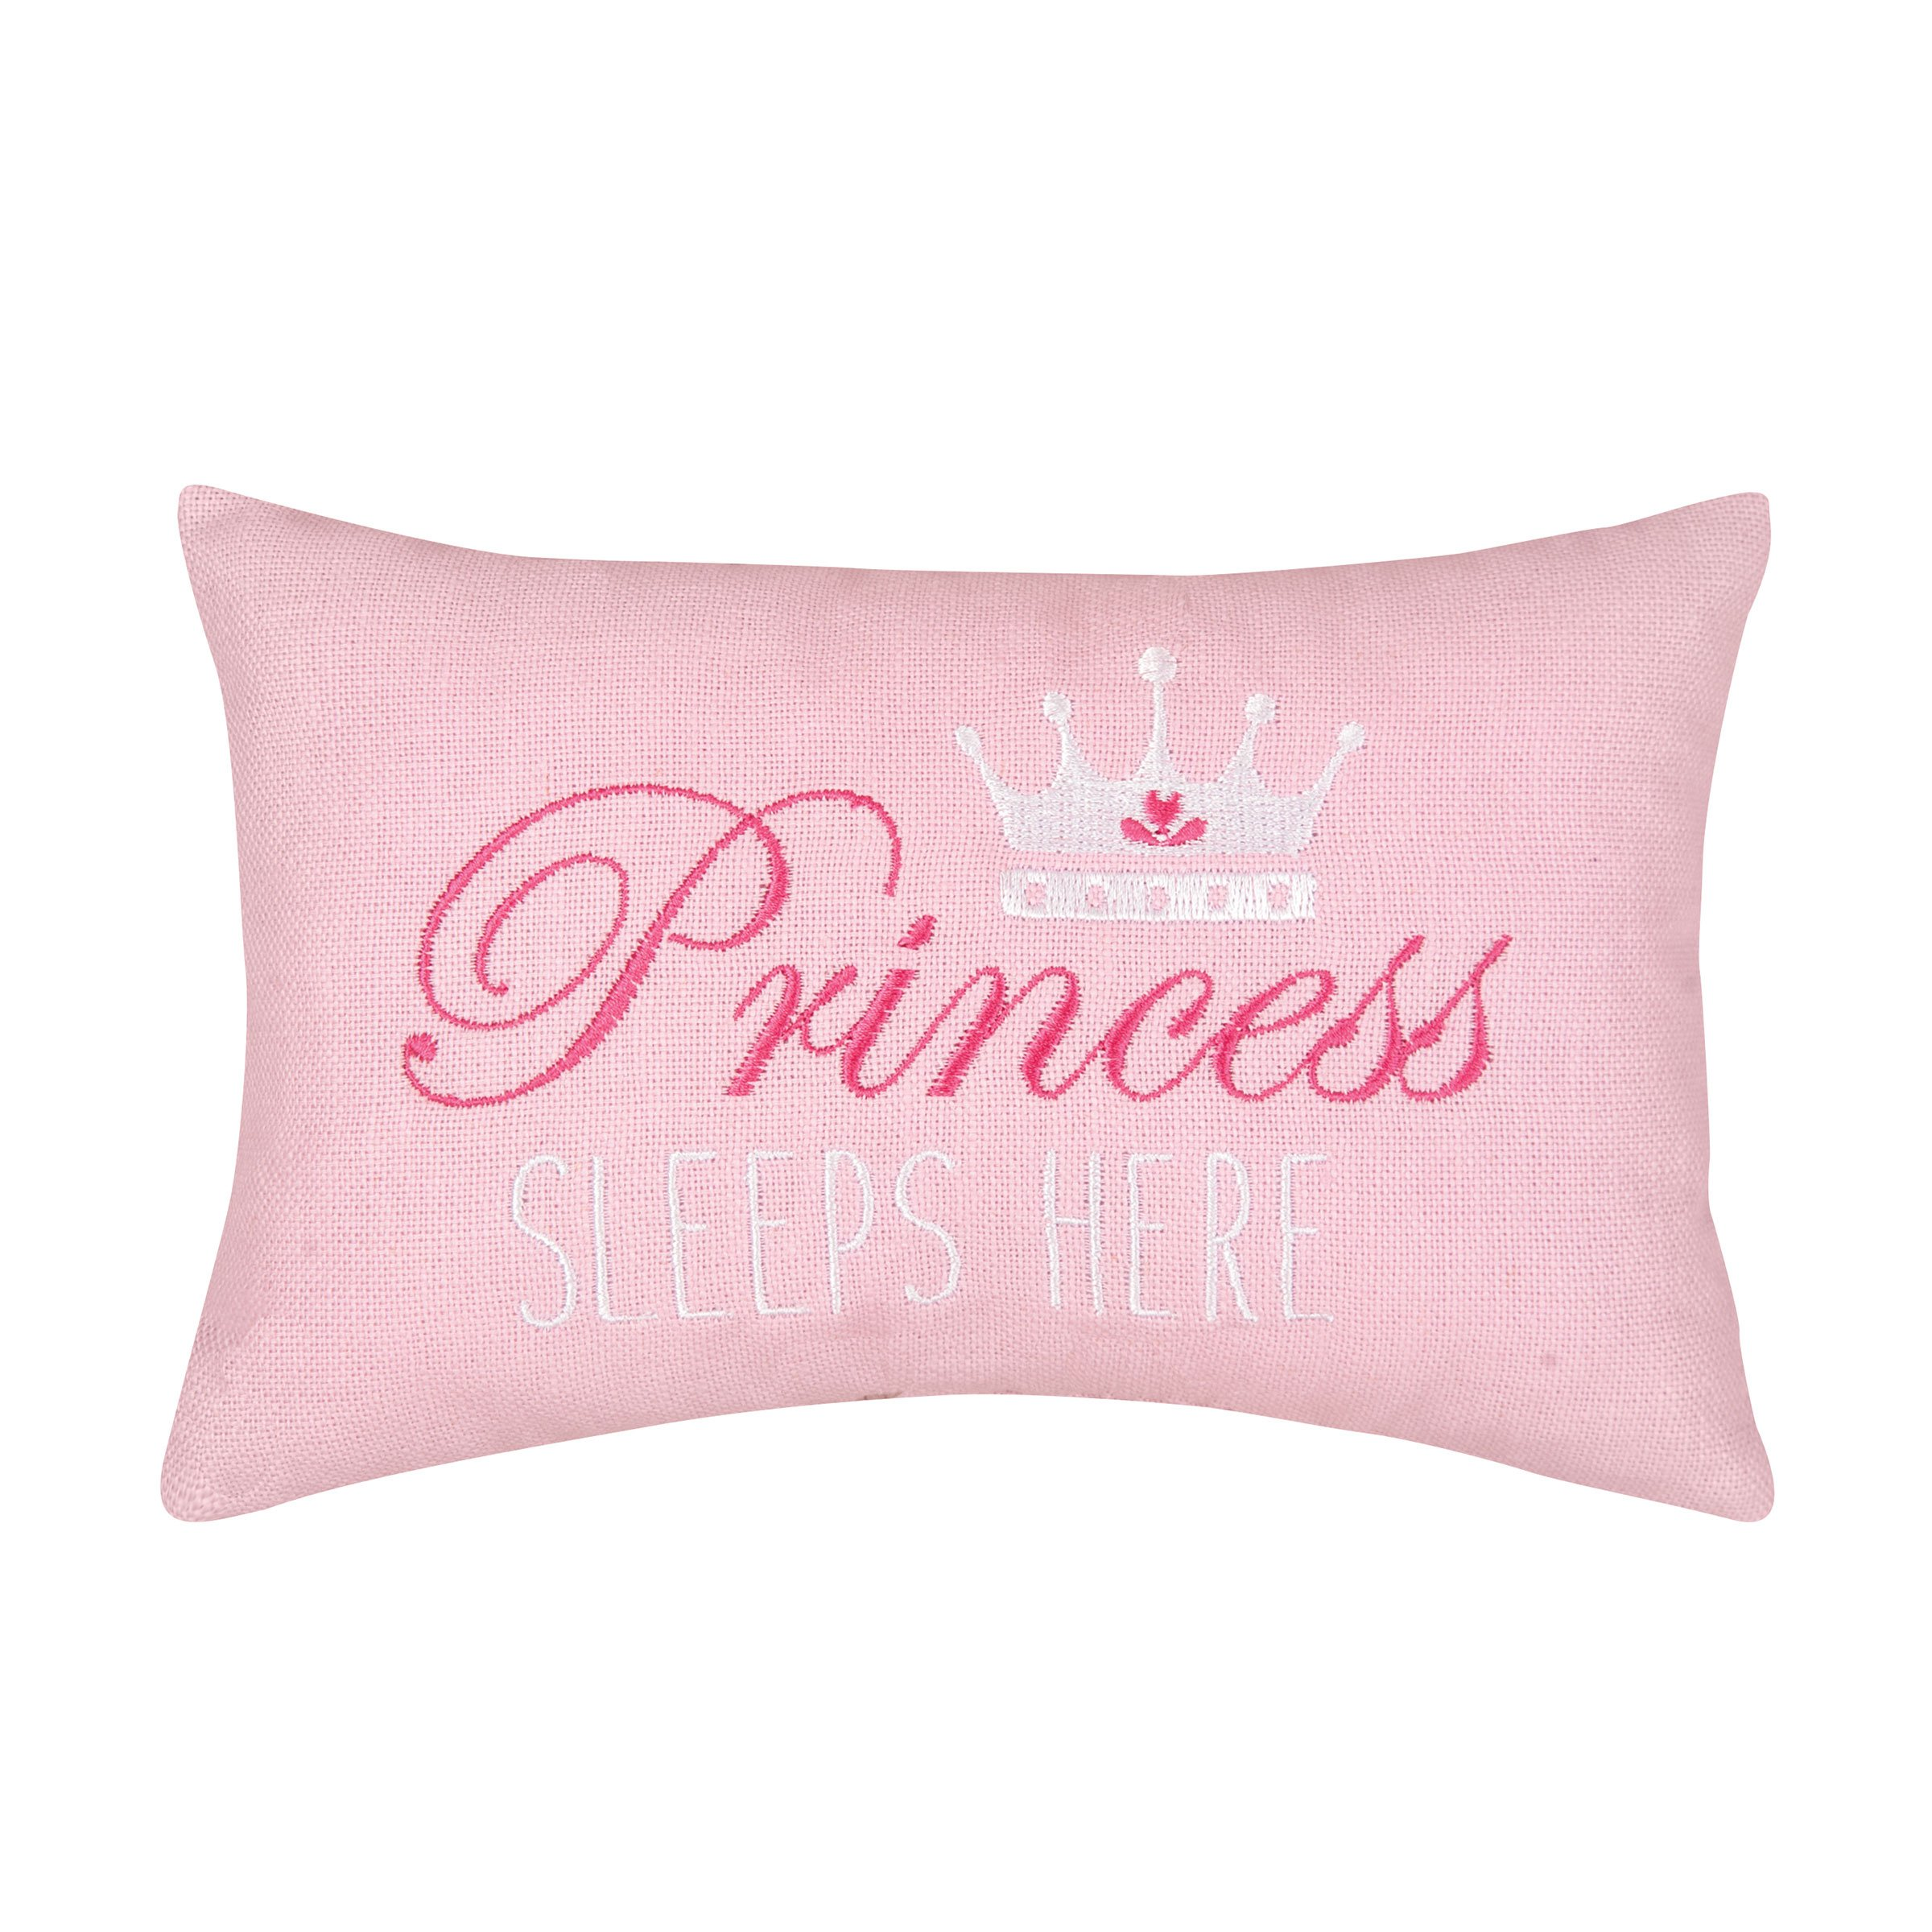 C&F Home Princess Sleeps Here Pink Graphic Embroidered Novelty Pillow 6''x9'' - Small